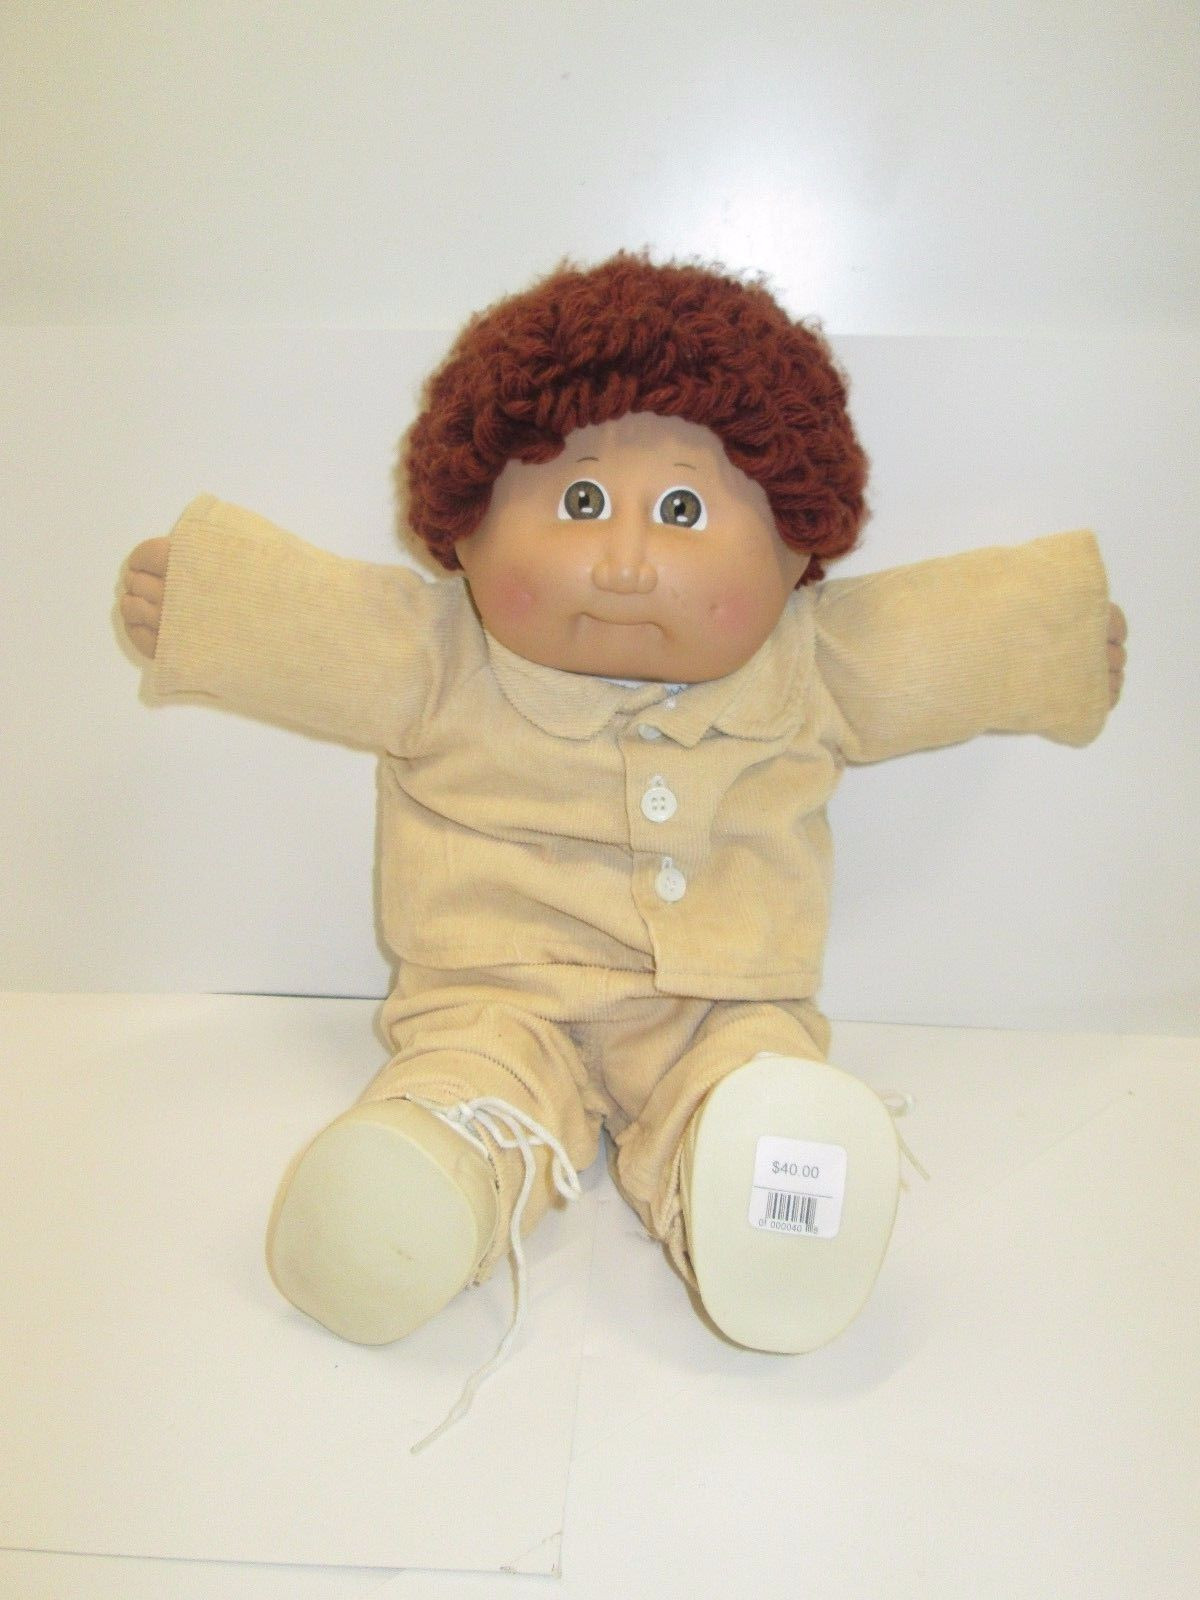 Beautiful 17 Vintage Cabbage Patch Doll Brown Hair Eyes 1978 1982 Old Cabbage Patch Doll Of Wonderful 47 Ideas Old Cabbage Patch Doll